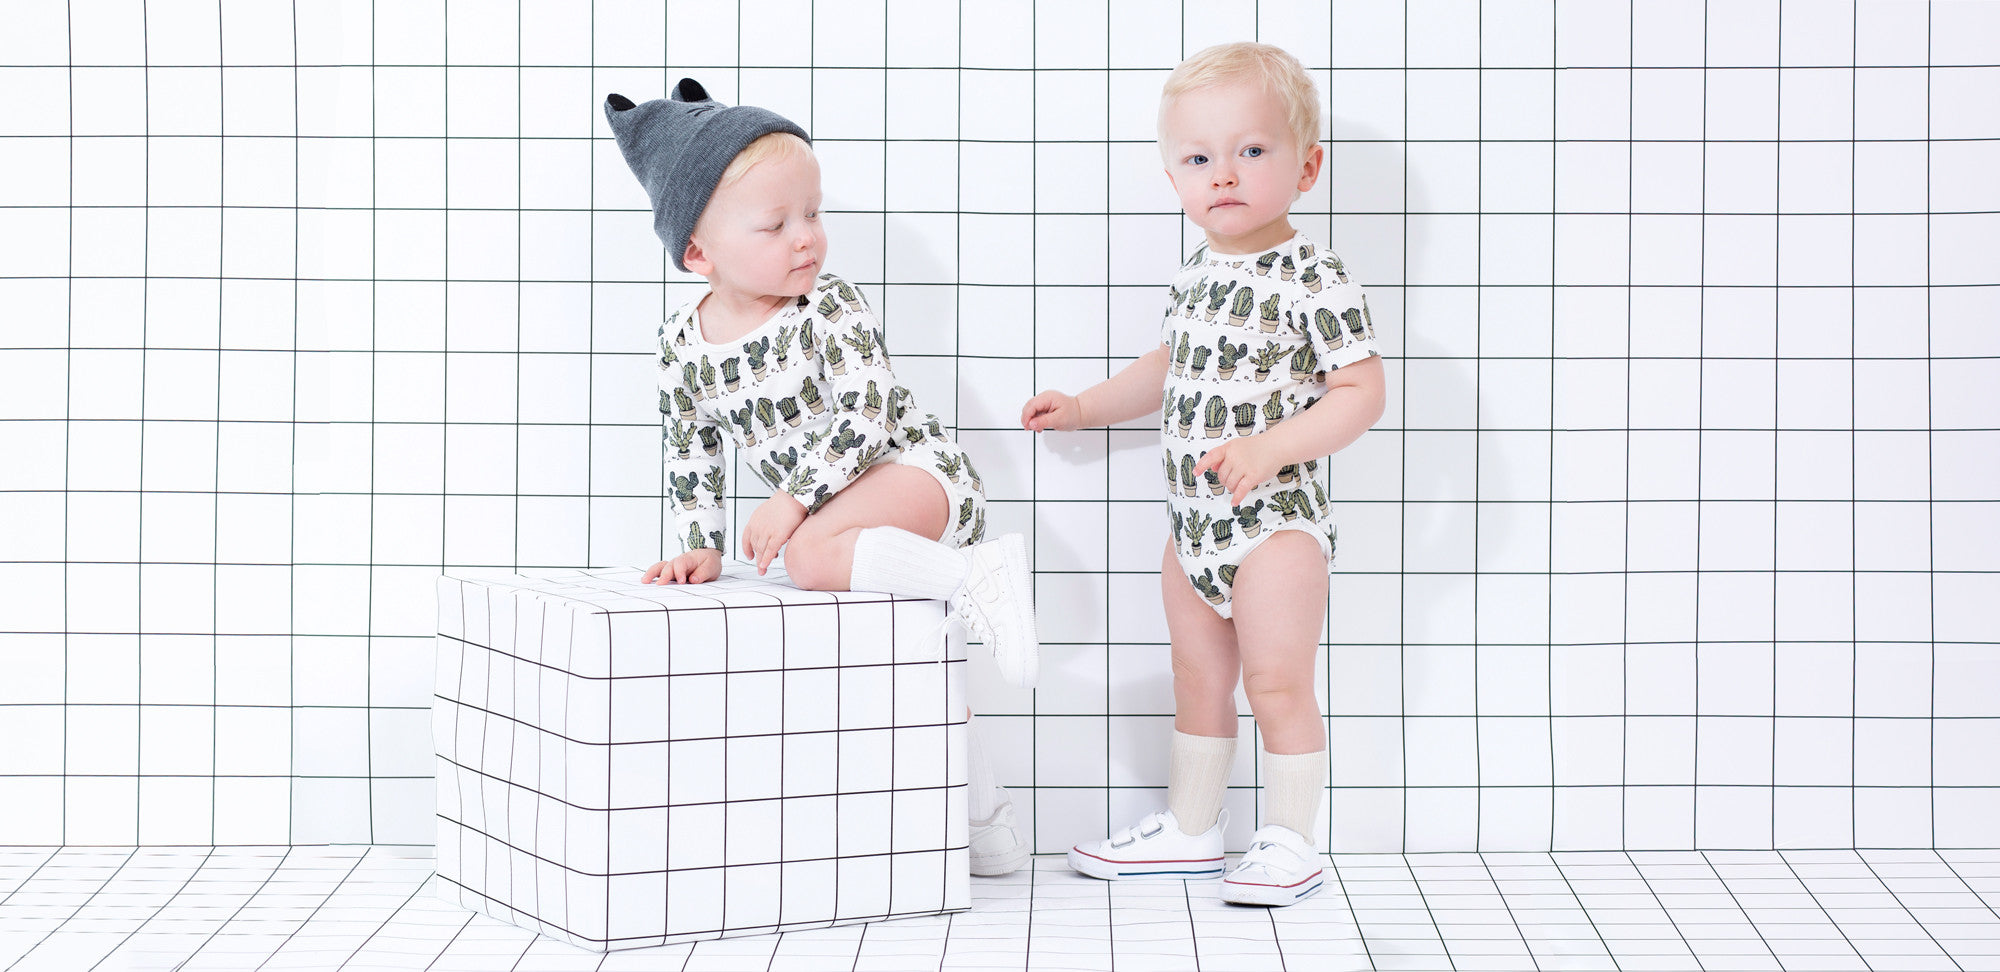 baby-clothes-cool-kids-newborn-style-fashion-mom-100%-organic-cotton-GOTS-certificate-children-toddler-fashion-style-baby-gift-baby-shower-bitch-please-long-sleeve-bodysuit-03